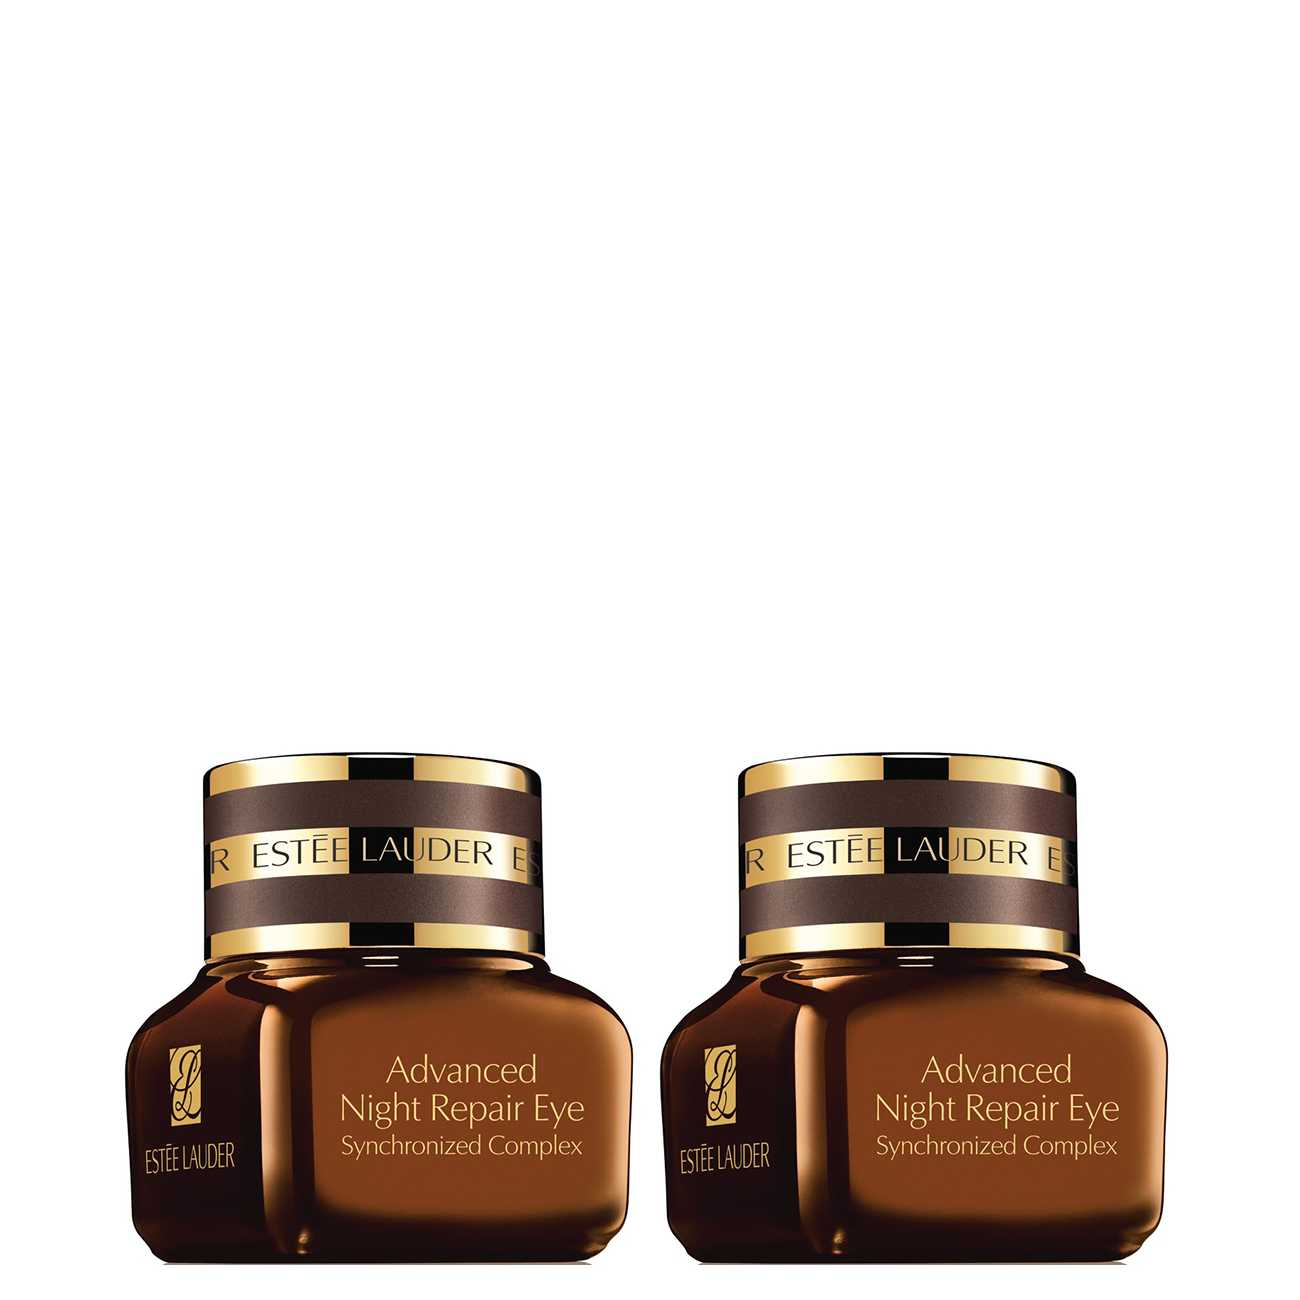 ADVANCED NIGHT REPAIR EYE SYNCHRONIZED COMPLEX DUO SET 30 ML